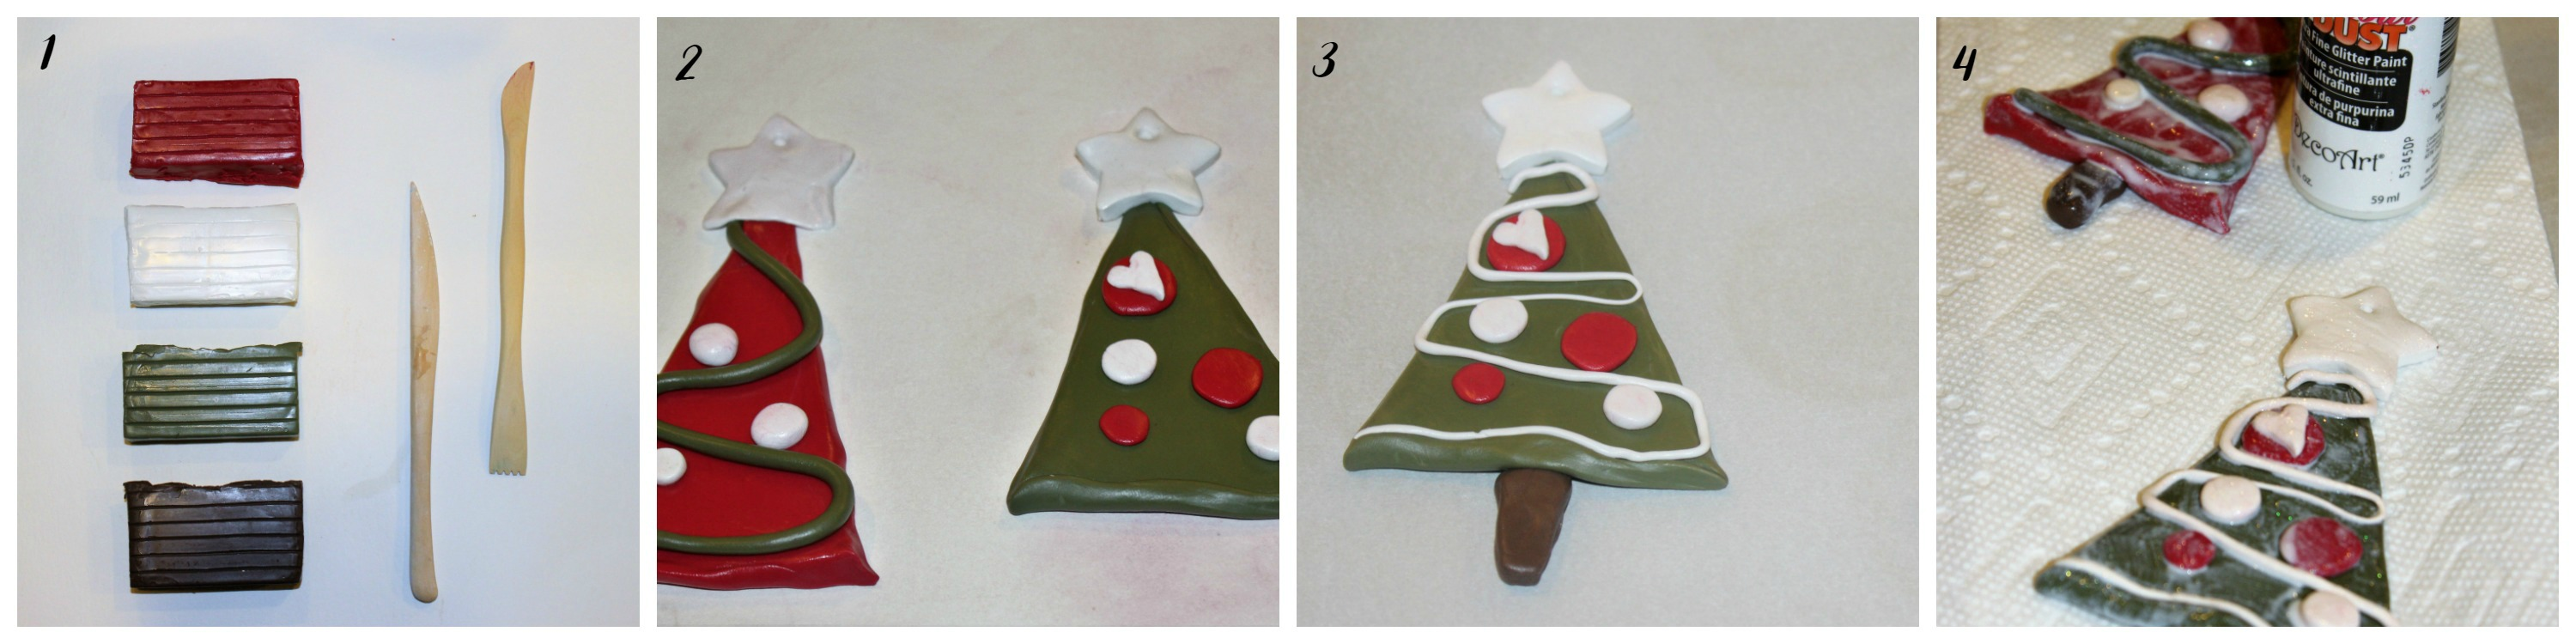 Christmas clay ornaments steps